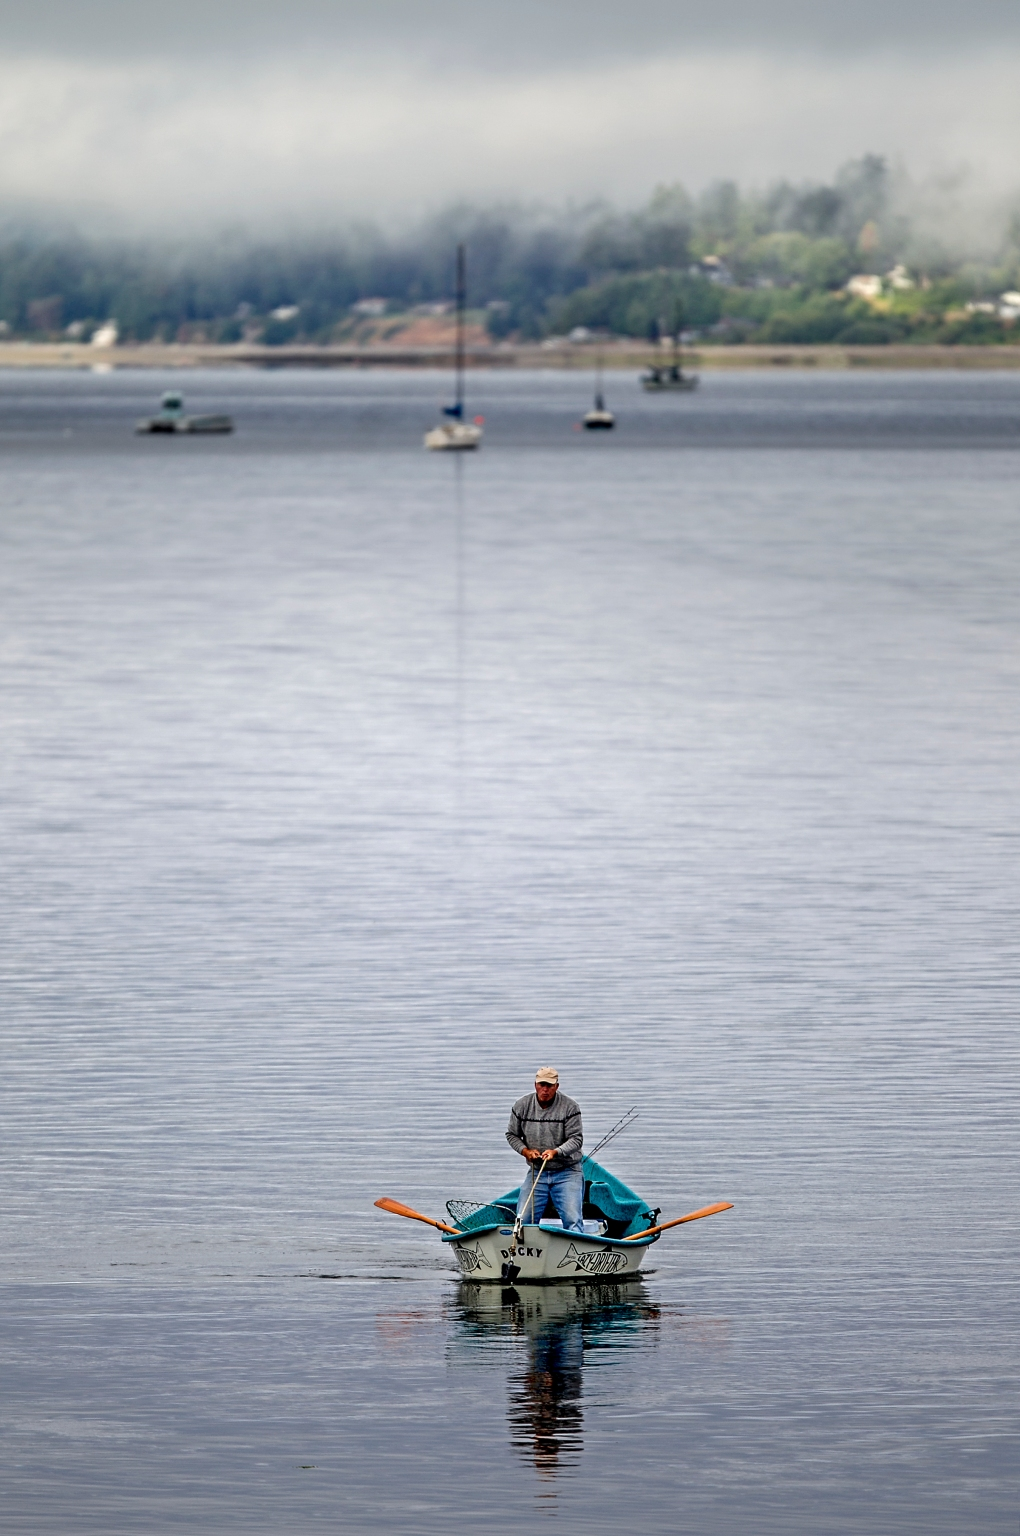 A fisherman in a rowboat pulls up anchor on Henderson Bay in Gig Harbor, Washington, Monday morning July 27, 2015. The forecast from the National Weather Service calls for partly cloudy skies and a high of 75 degrees.